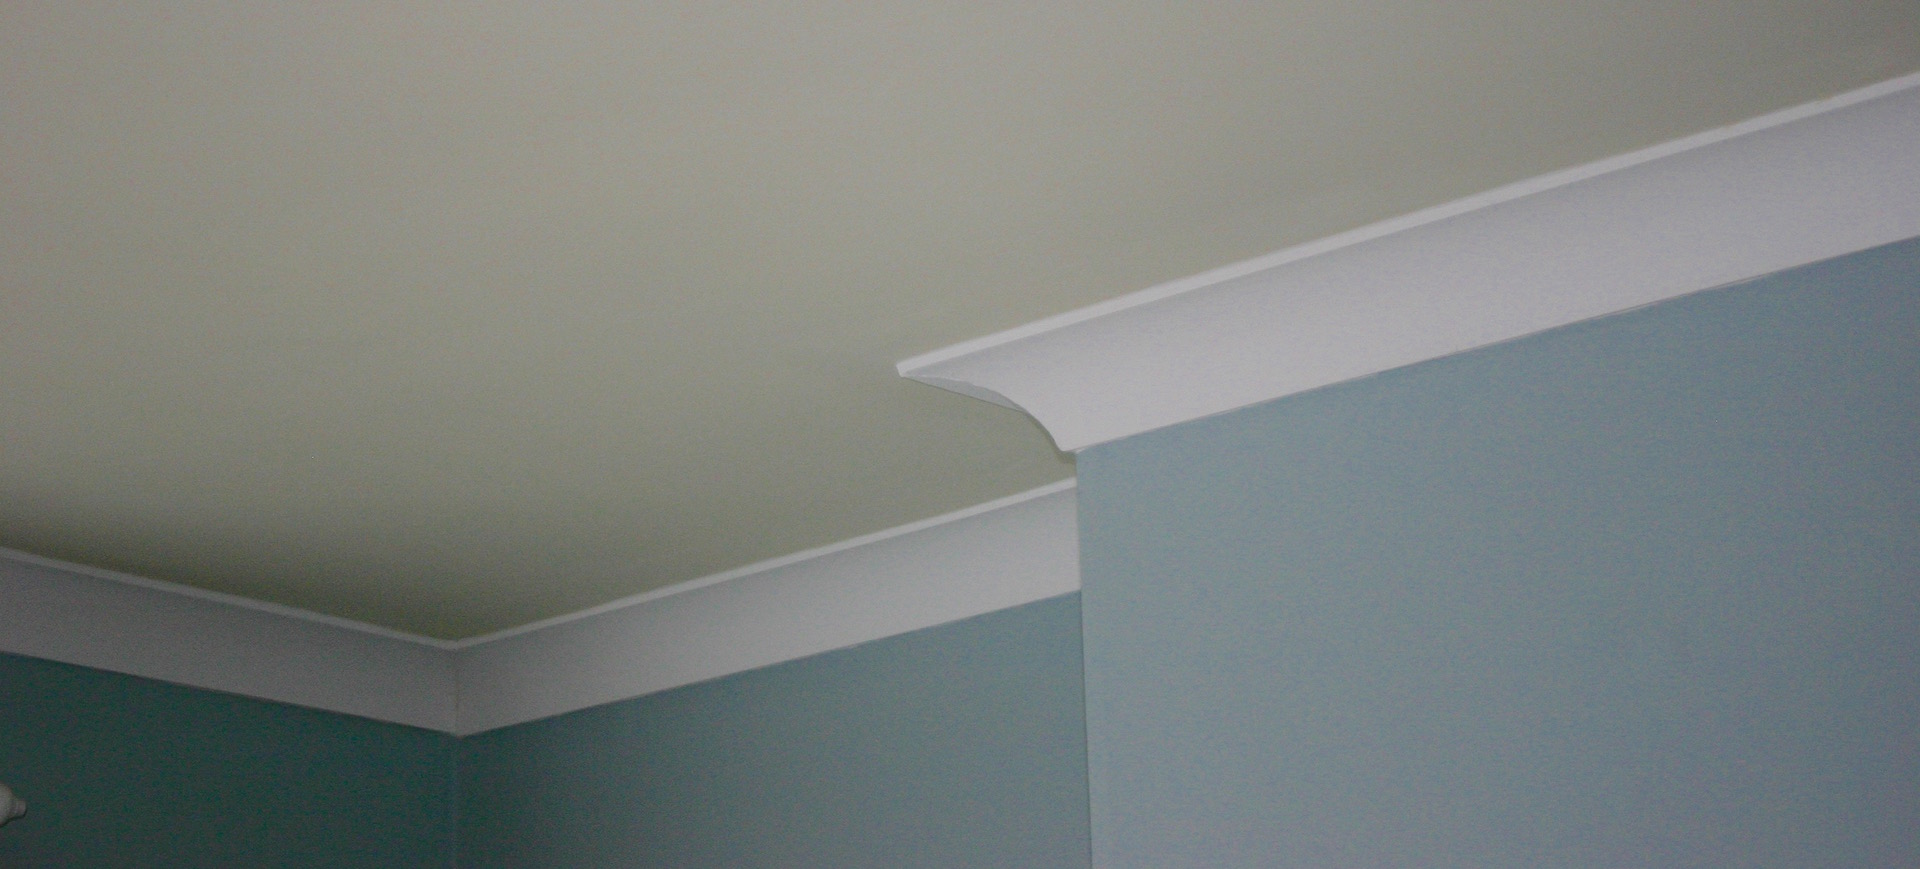 How To Paint Where Wall Meets Ceiling